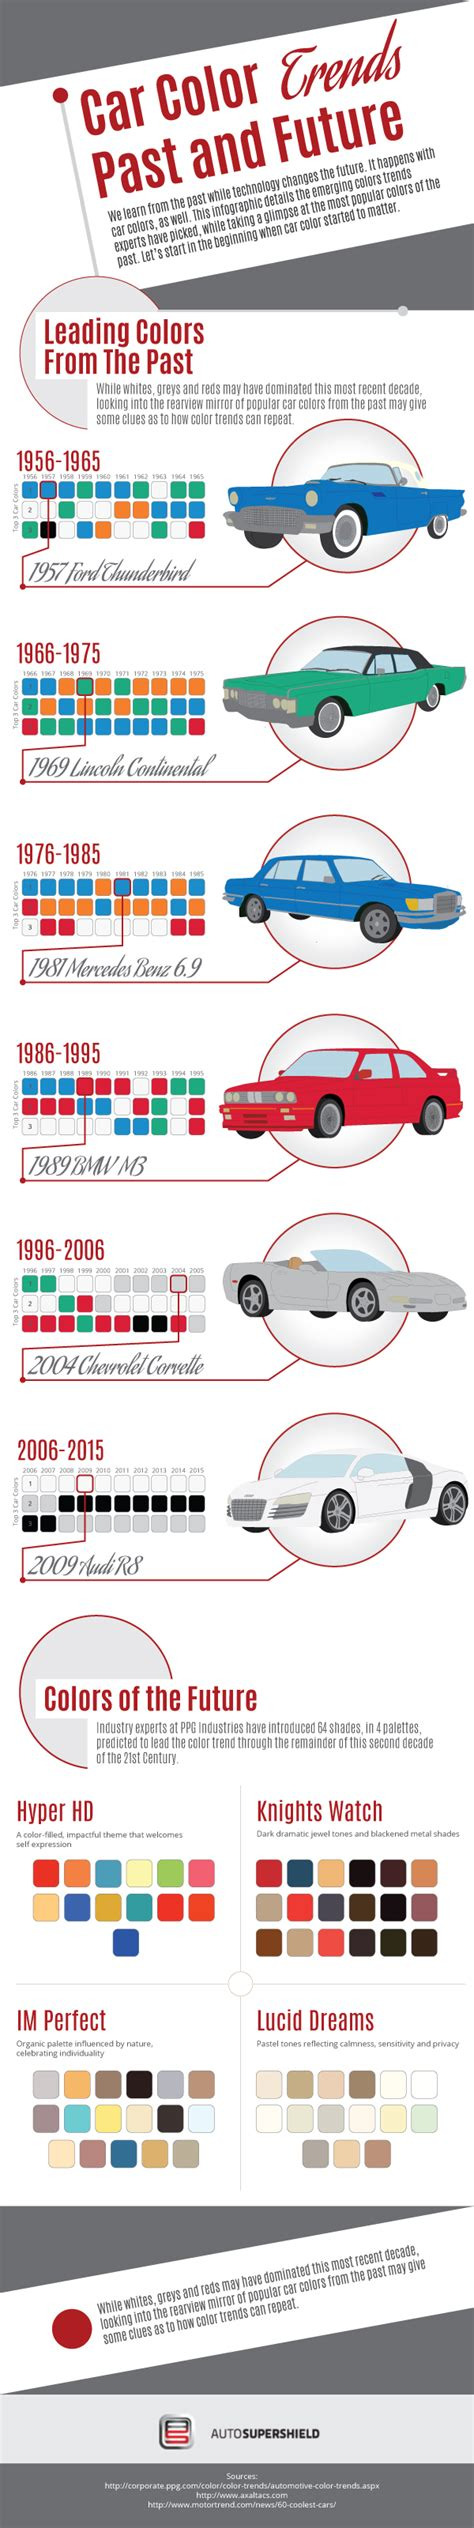 car color trends past and future infographic car chat with auto supershield